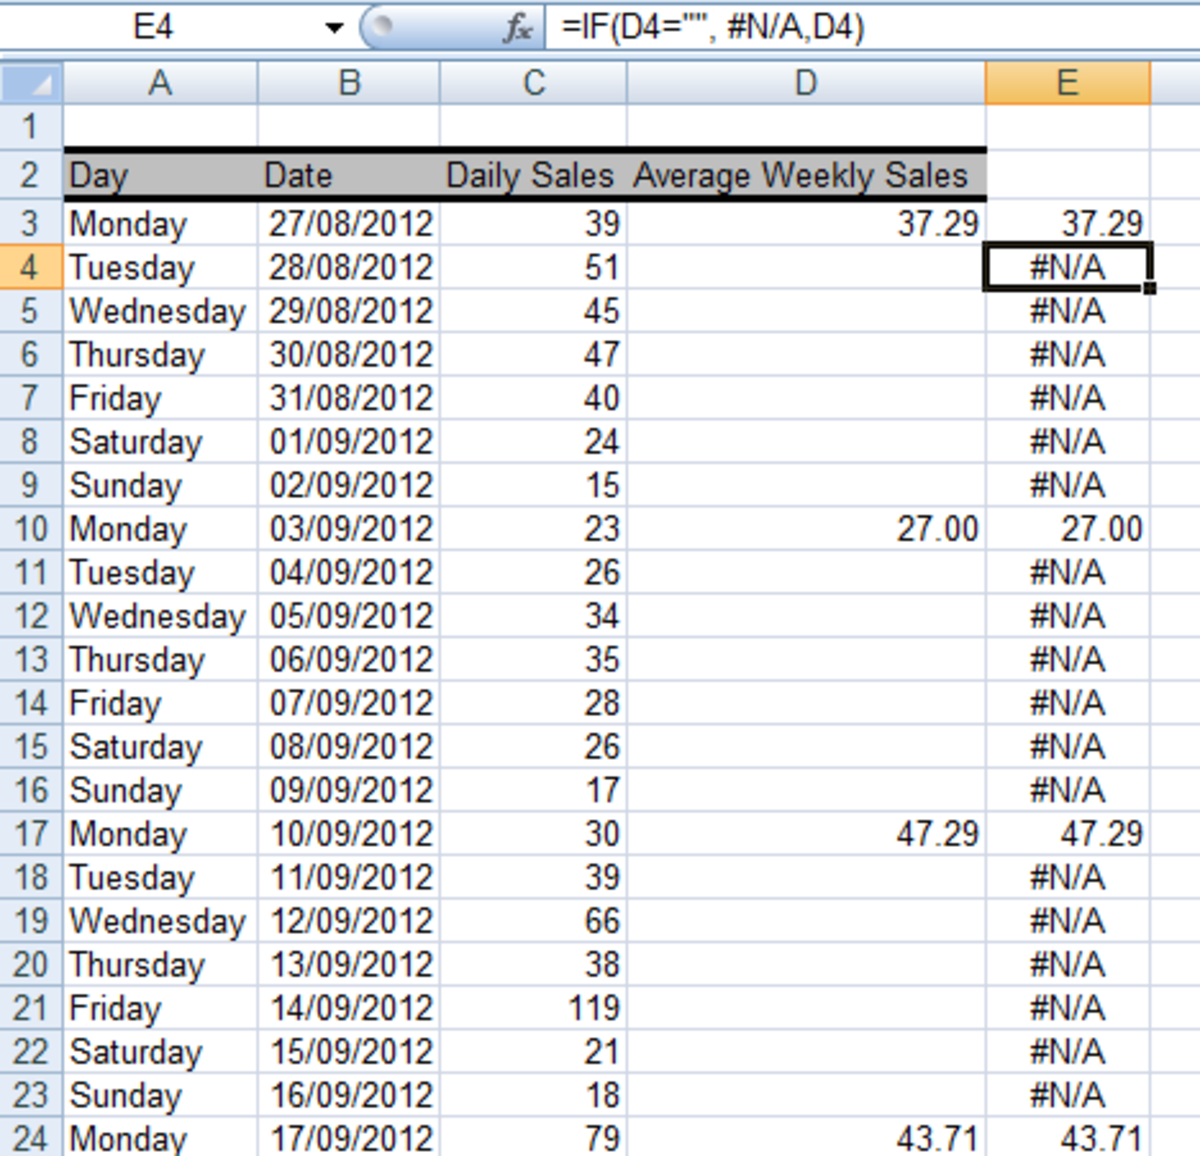 Ediblewildsus  Scenic How To Get Excel  And  To Ignore Empty Cells In A Chart Or  With Lovely Using The If Function In A Formula To Convert Empty Cells To Na With Alluring Excel Bi Also How To Calculate Days Between Dates In Excel In Addition Excel Clipboard And Plotting In Excel As Well As Day Of The Week In Excel Additionally Excel Cosine From Turbofuturecom With Ediblewildsus  Lovely How To Get Excel  And  To Ignore Empty Cells In A Chart Or  With Alluring Using The If Function In A Formula To Convert Empty Cells To Na And Scenic Excel Bi Also How To Calculate Days Between Dates In Excel In Addition Excel Clipboard From Turbofuturecom